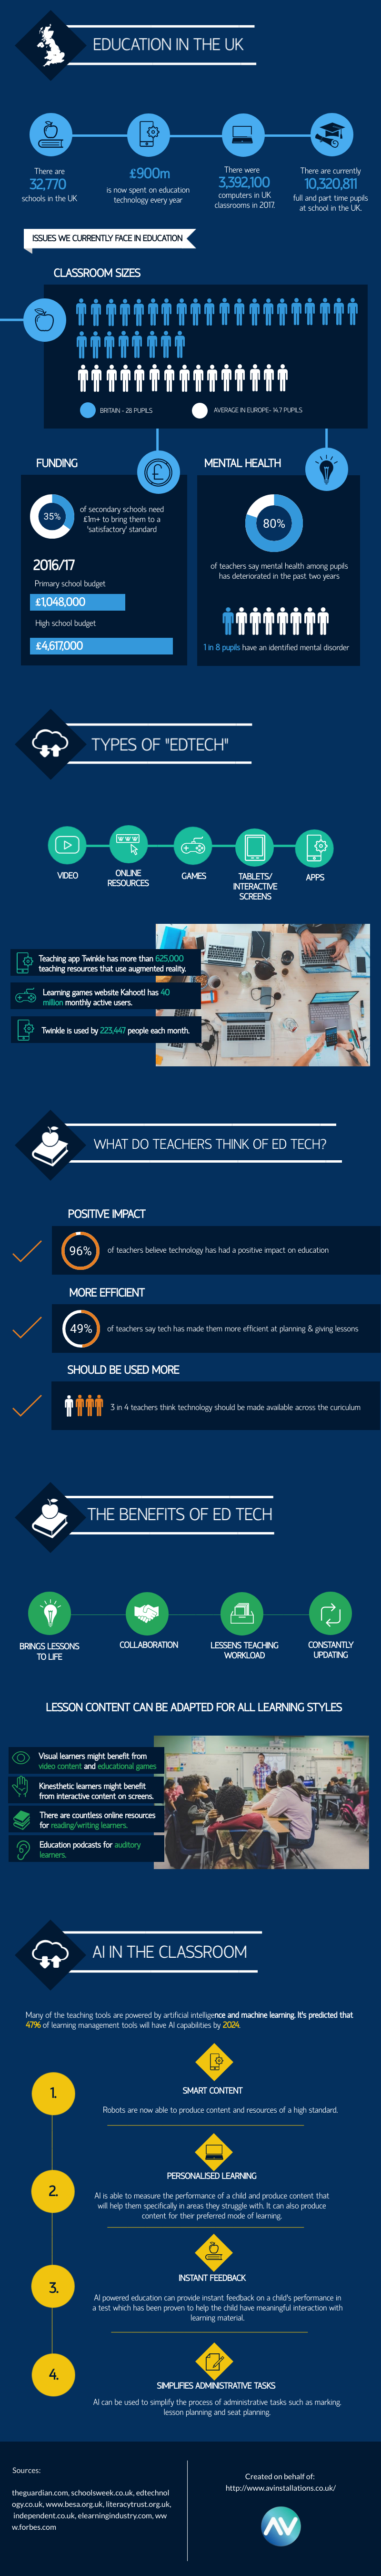 How Technology is Changing Teaching & Learning #infographic